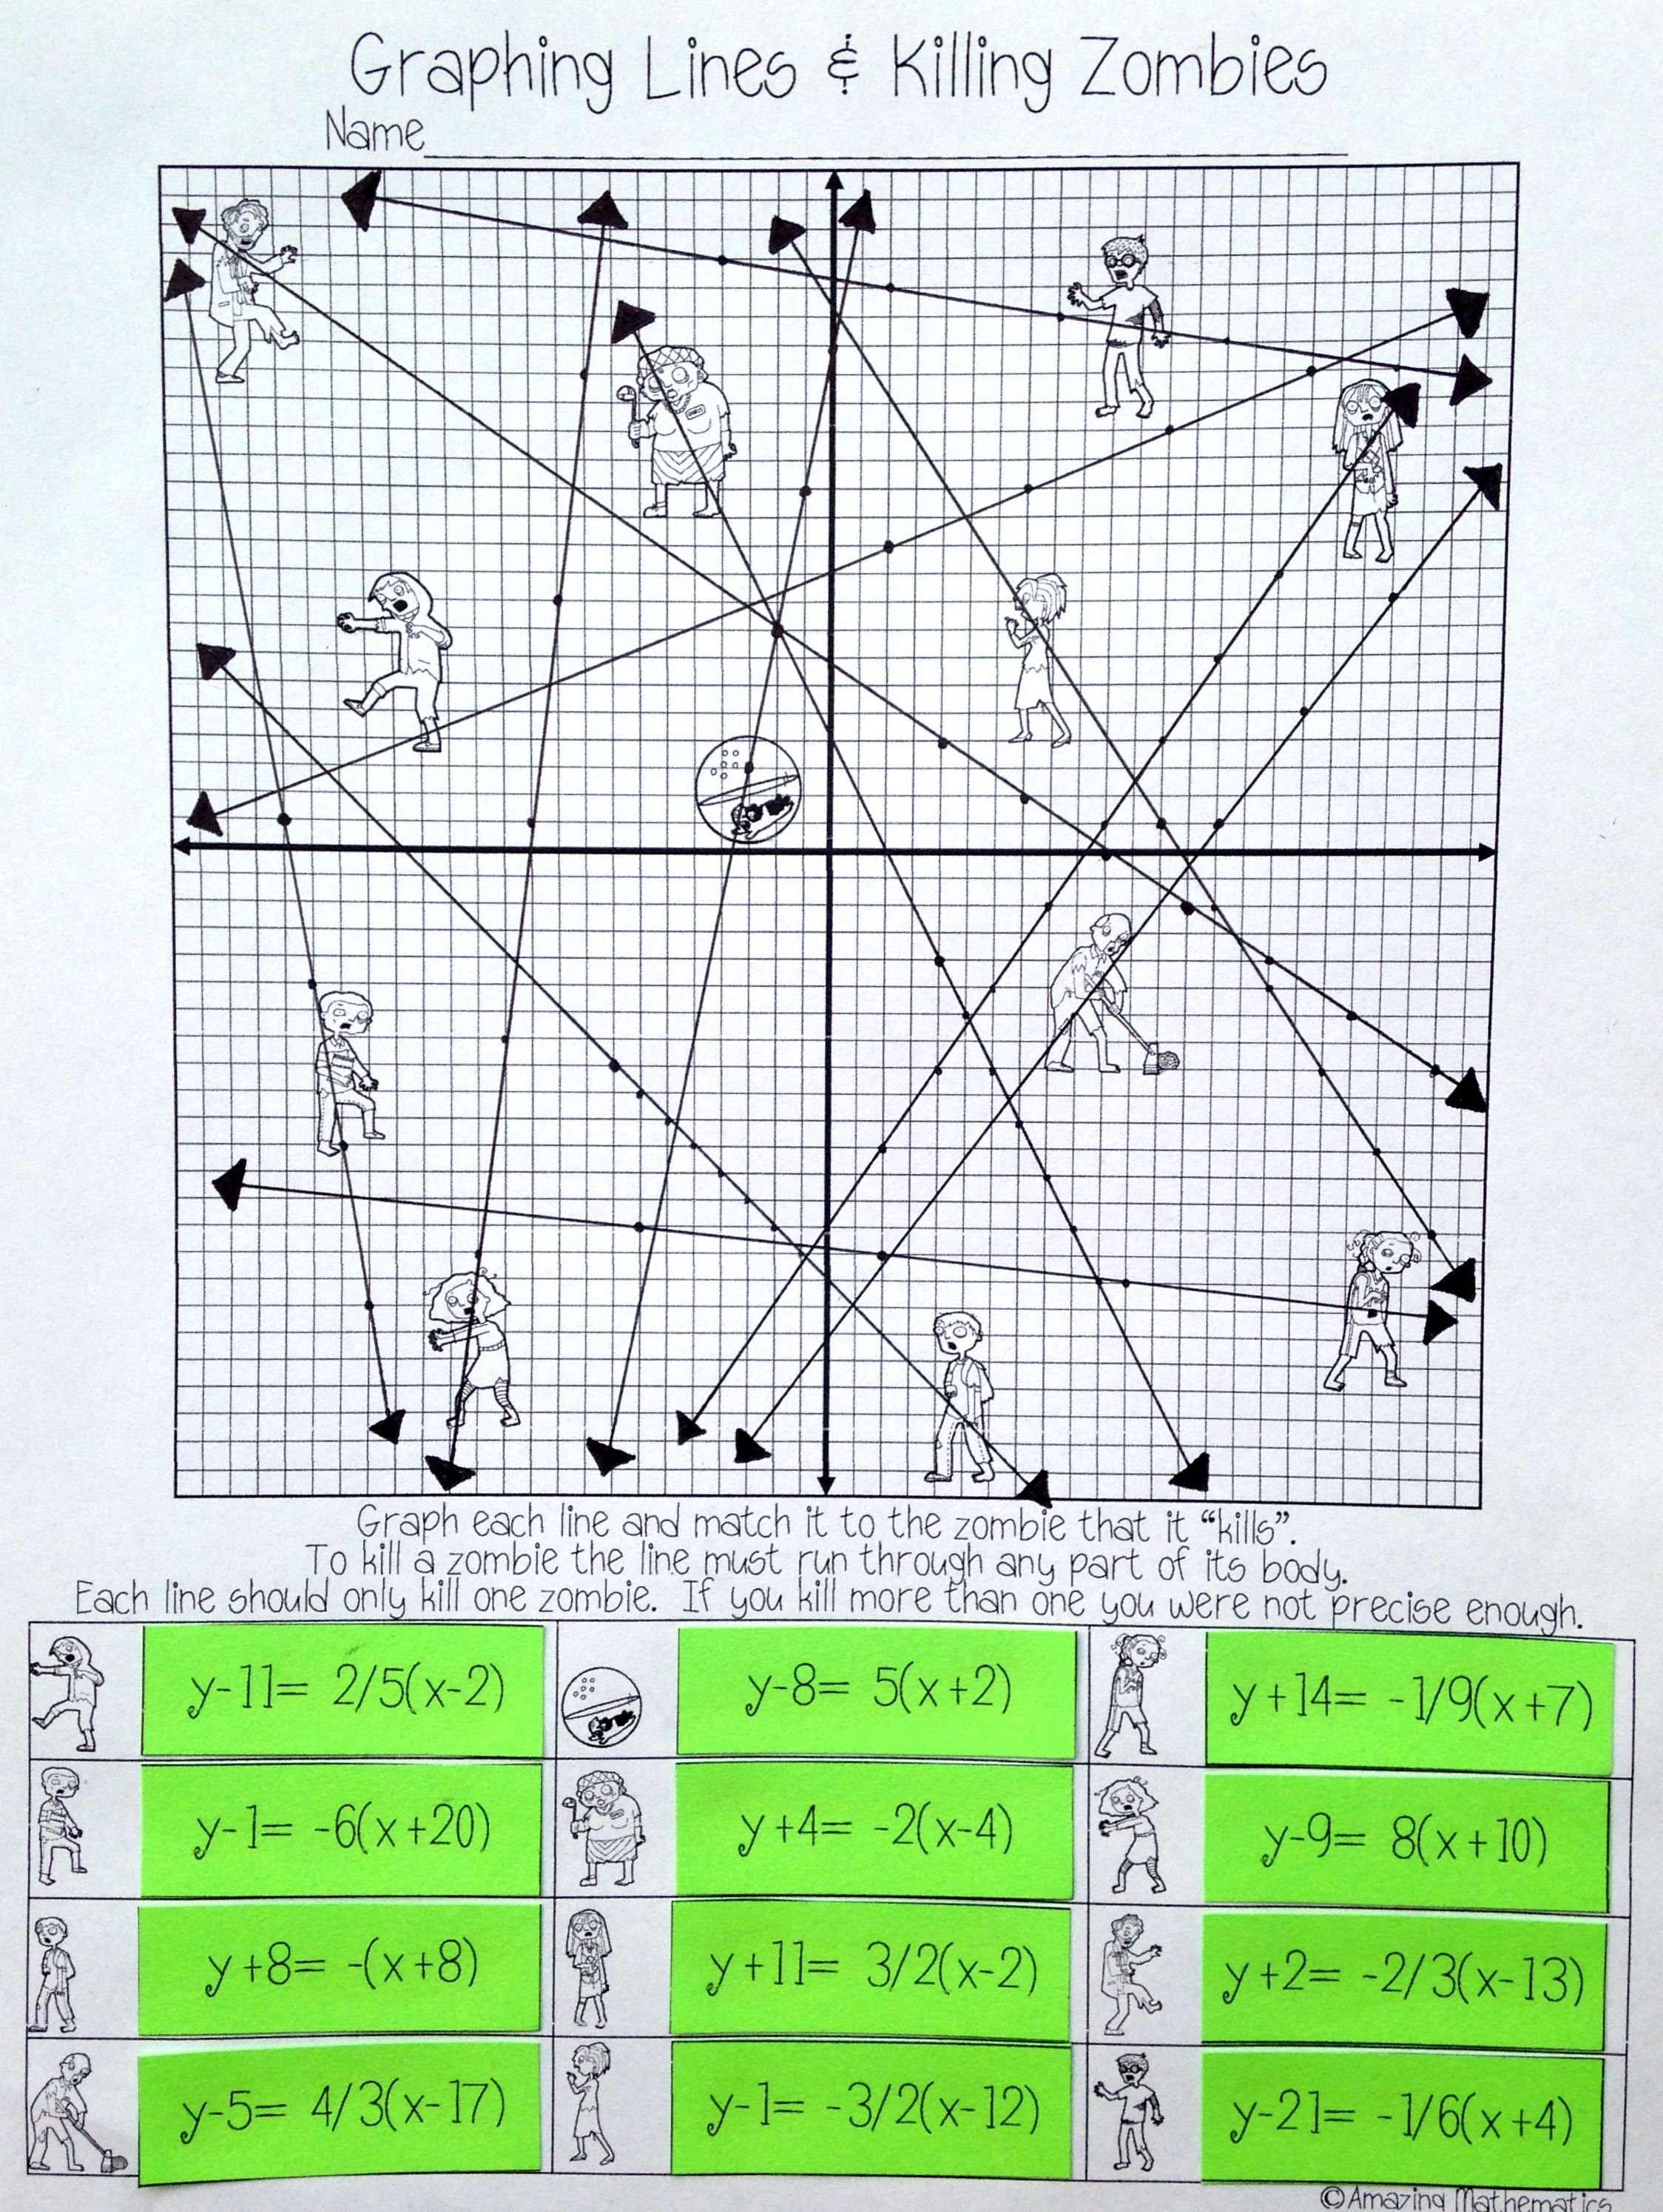 Zombie Graphing Worksheet Answers